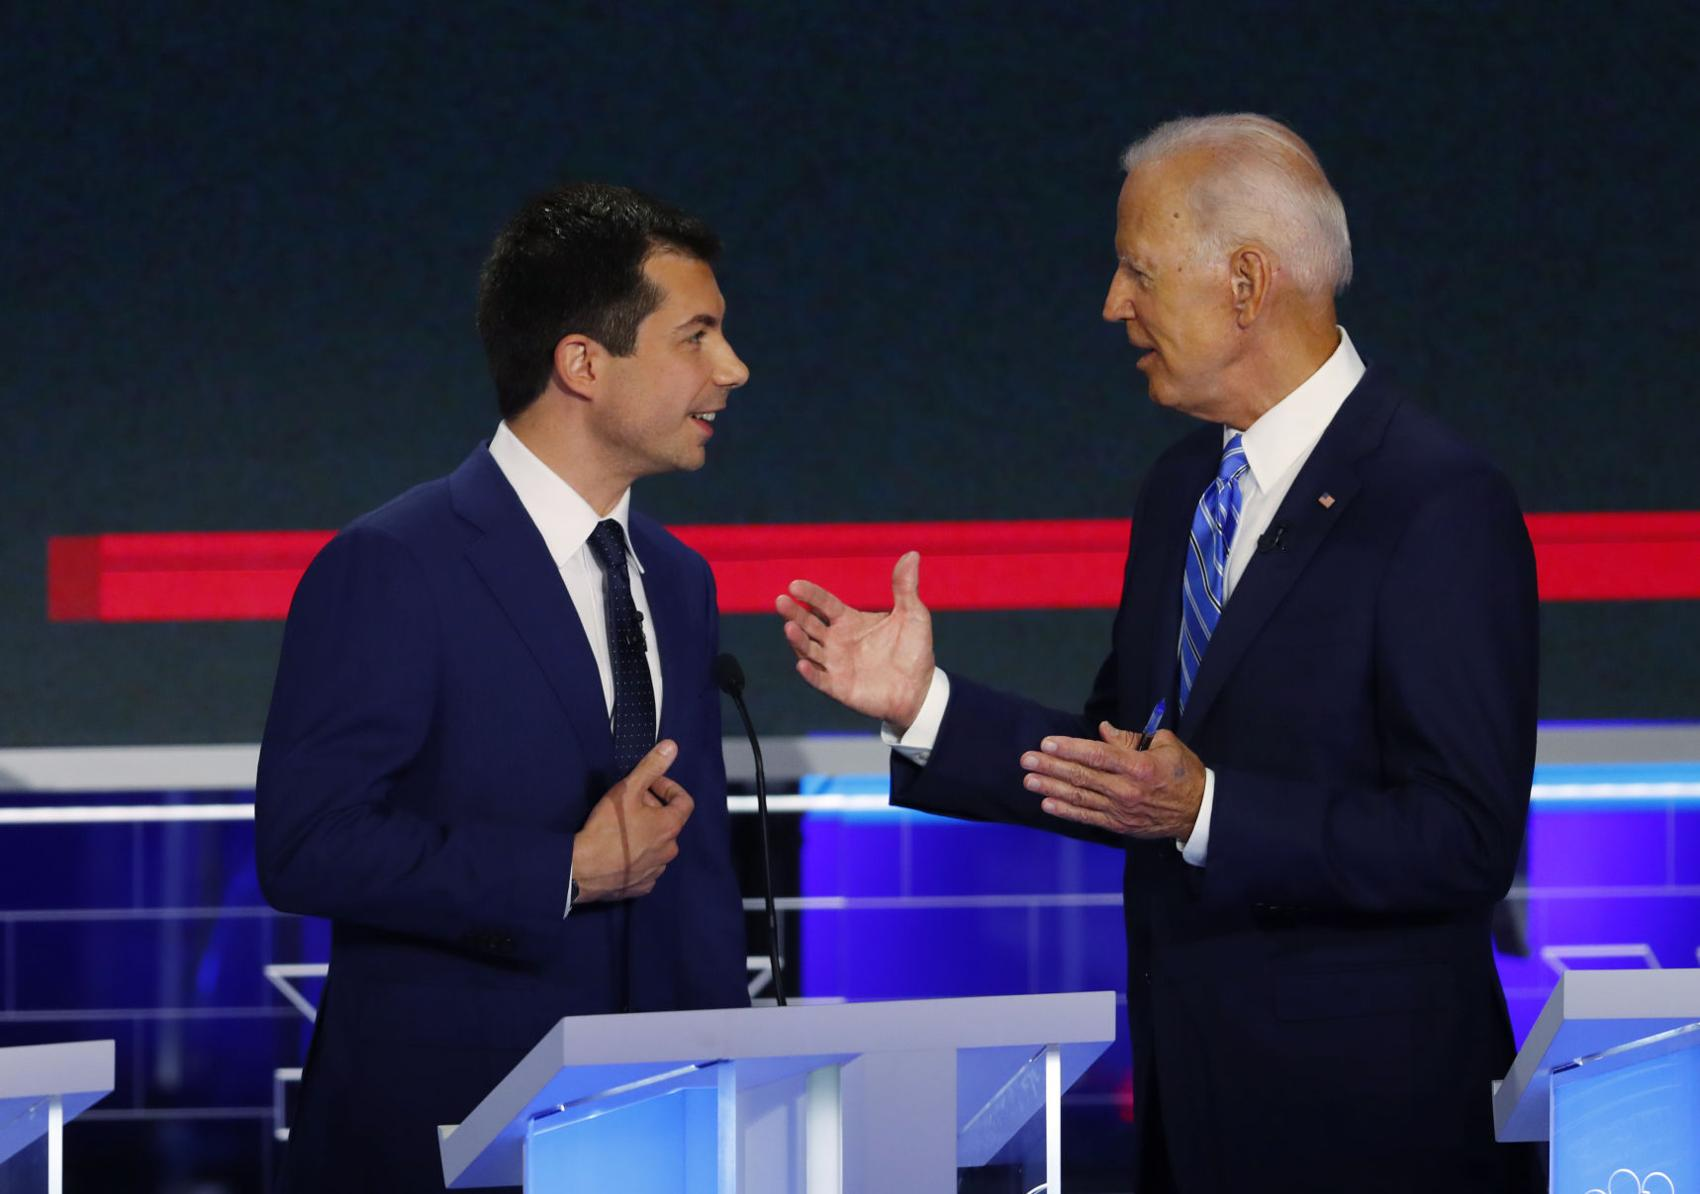 POST AND COURIER – Joe Biden's SC supporters urge NH voters to consider Buttigieg's lack of black support